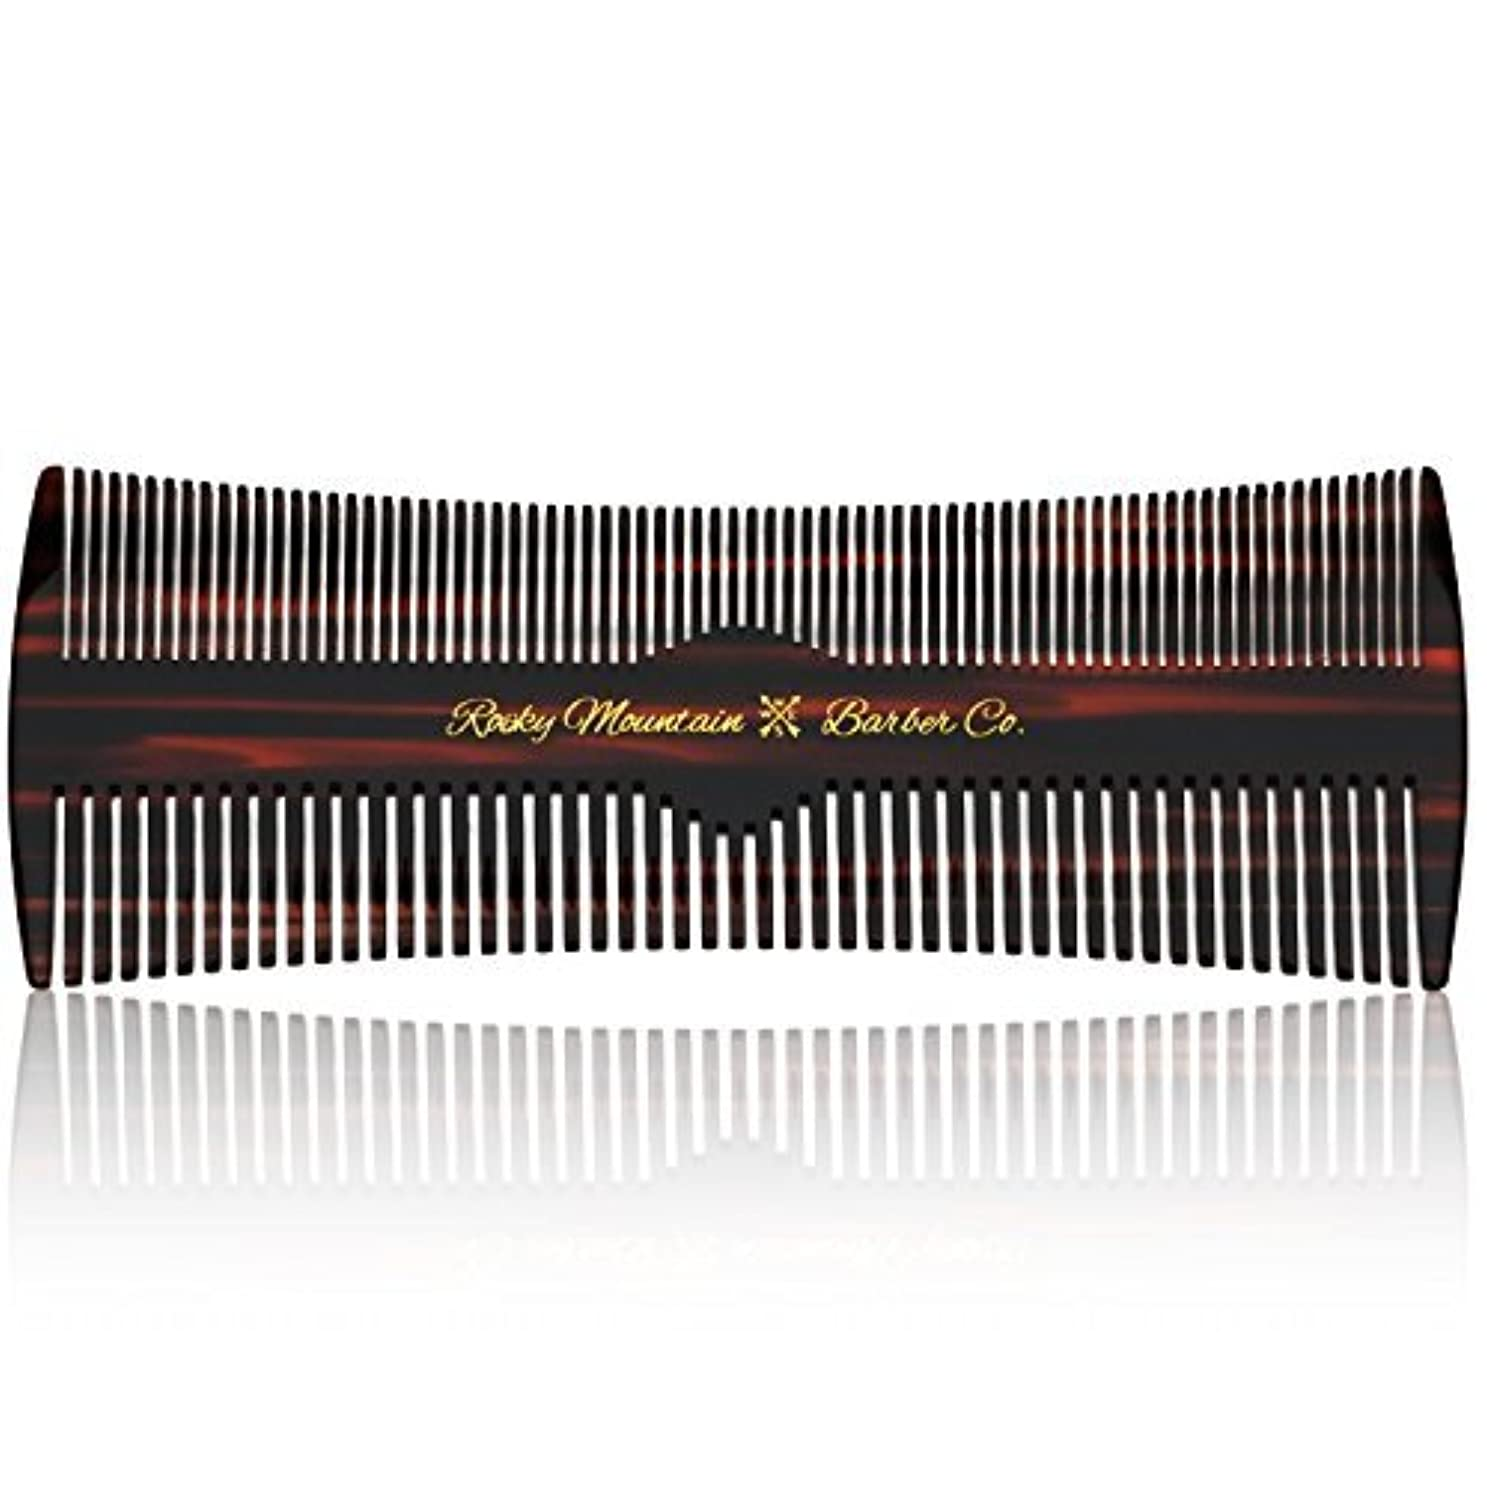 国内の腐った本当のことを言うとHair Comb - Fine and Medium Tooth Comb for Head Hair, Beard, Mustache - Warp Resistant, No Snag Design with Contour...